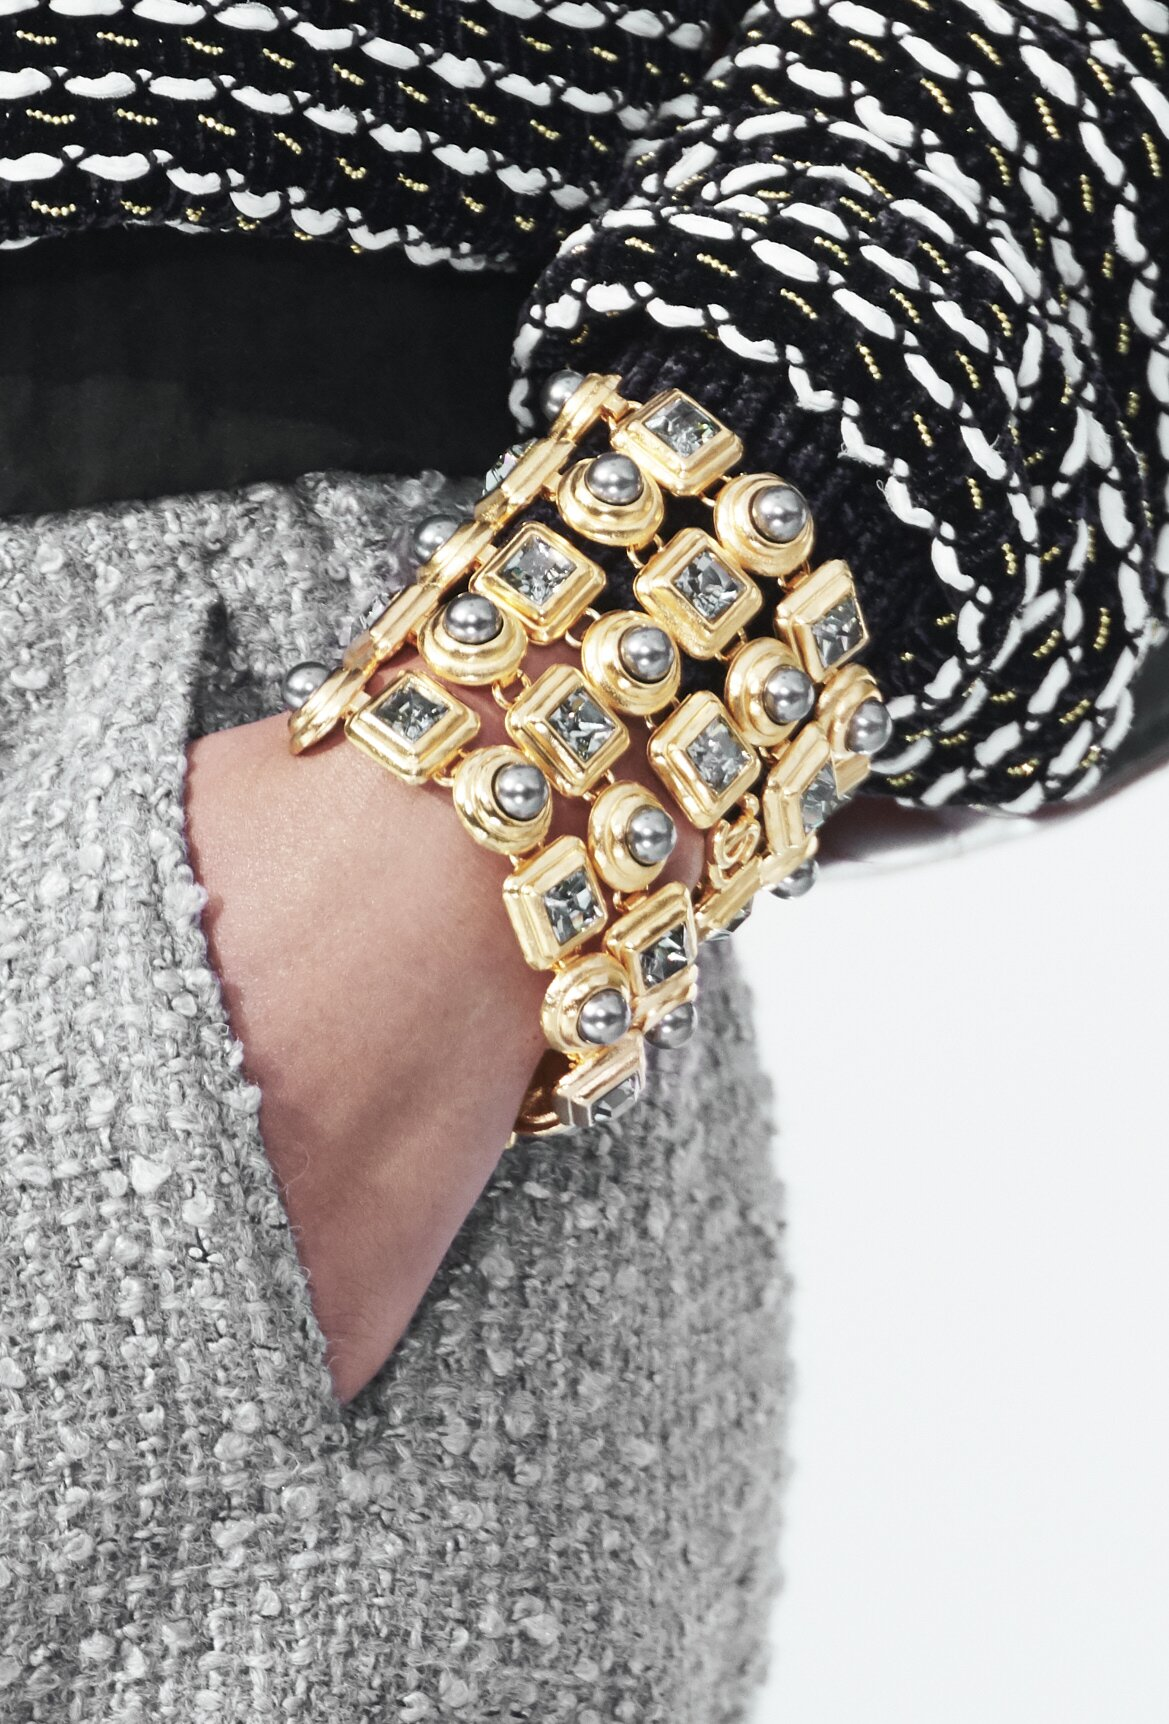 Chanel Bracelet 2020-21 Womenswear